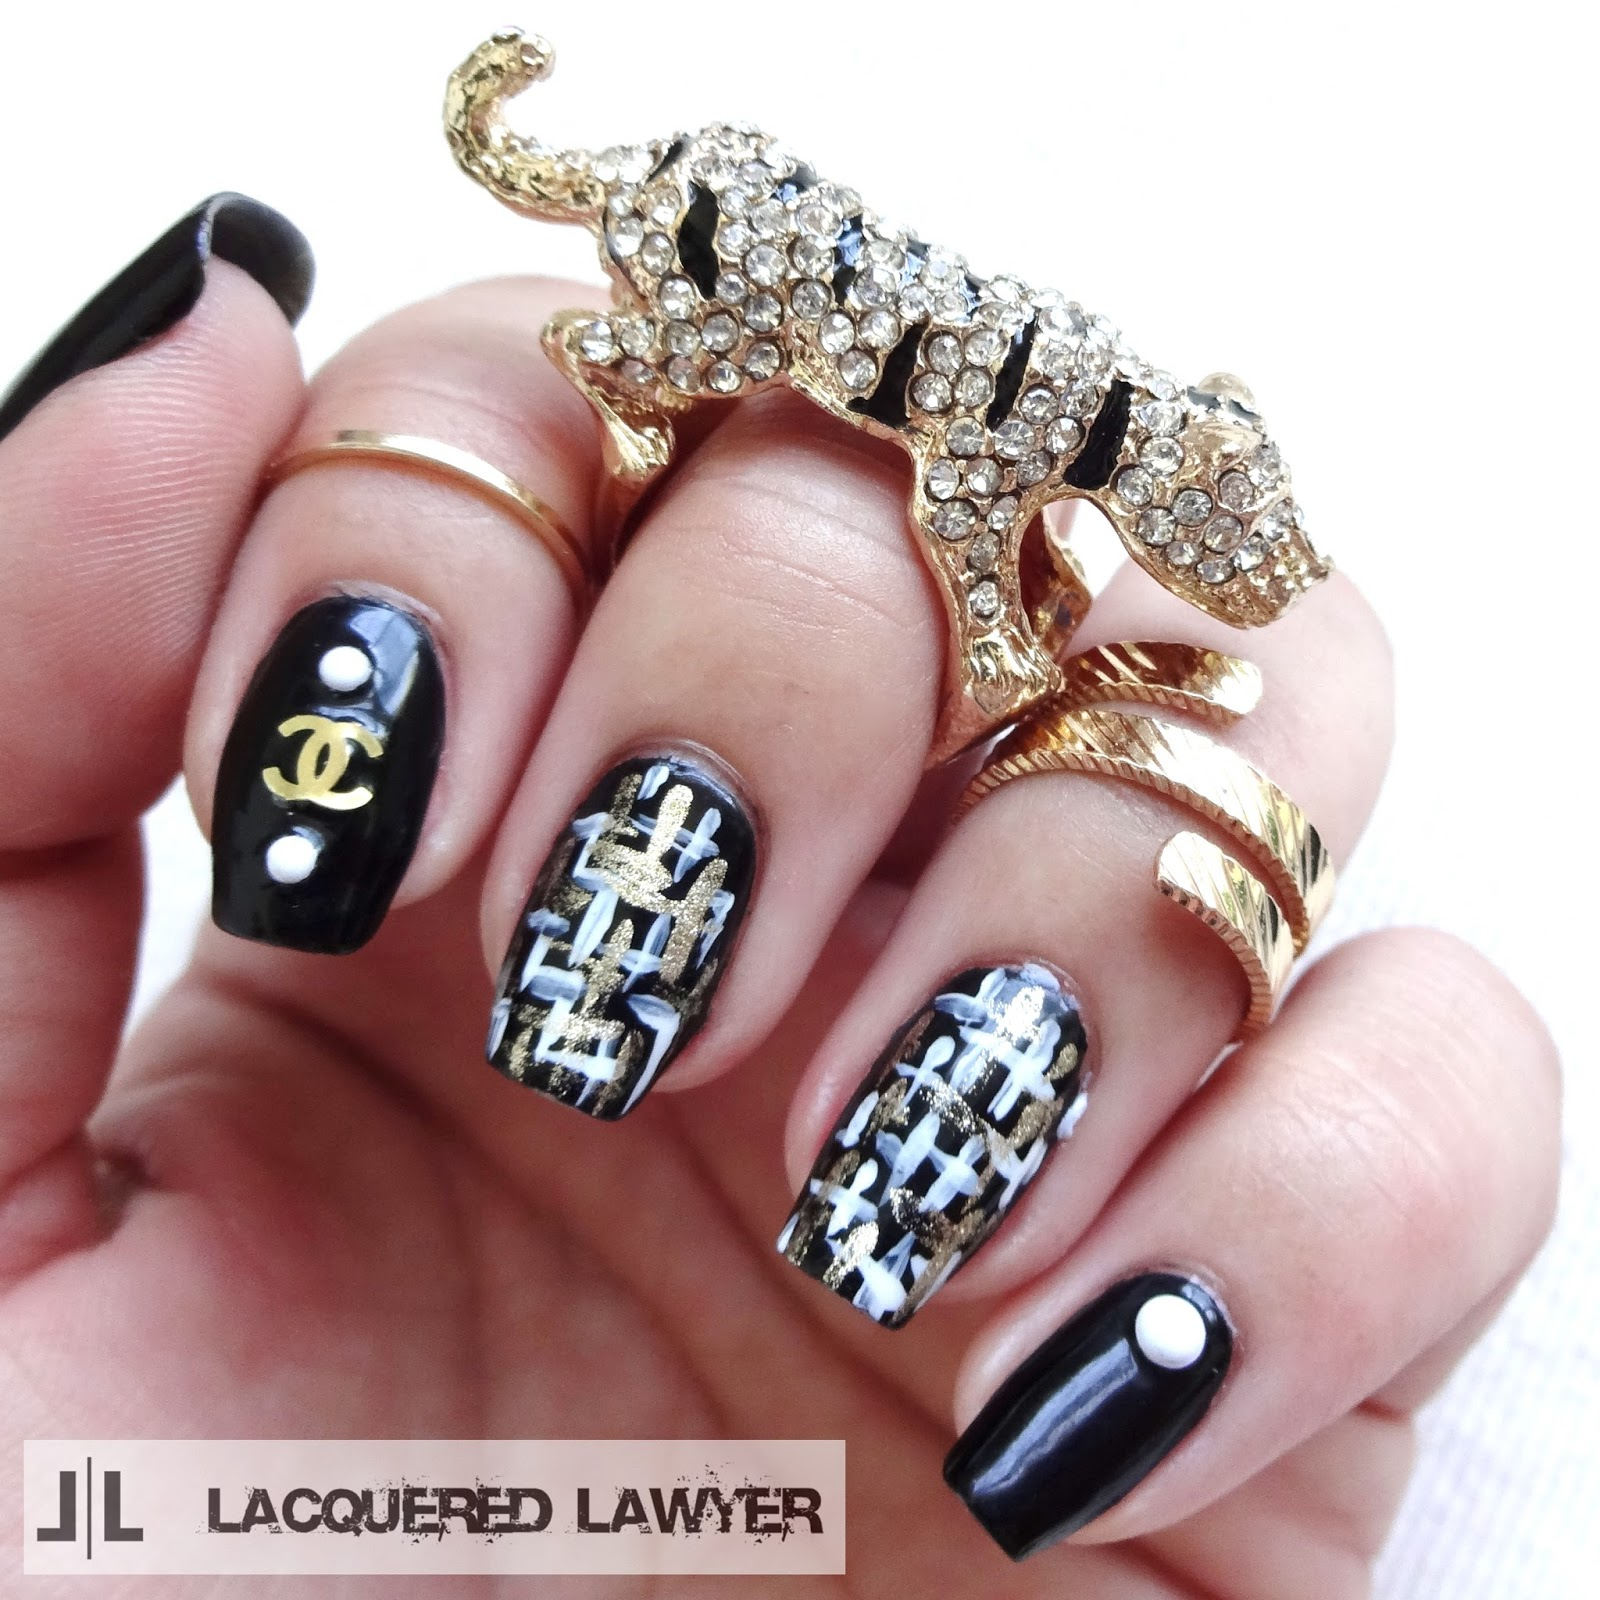 Lacquered Lawyer Nail Art Blog Chanel Chic